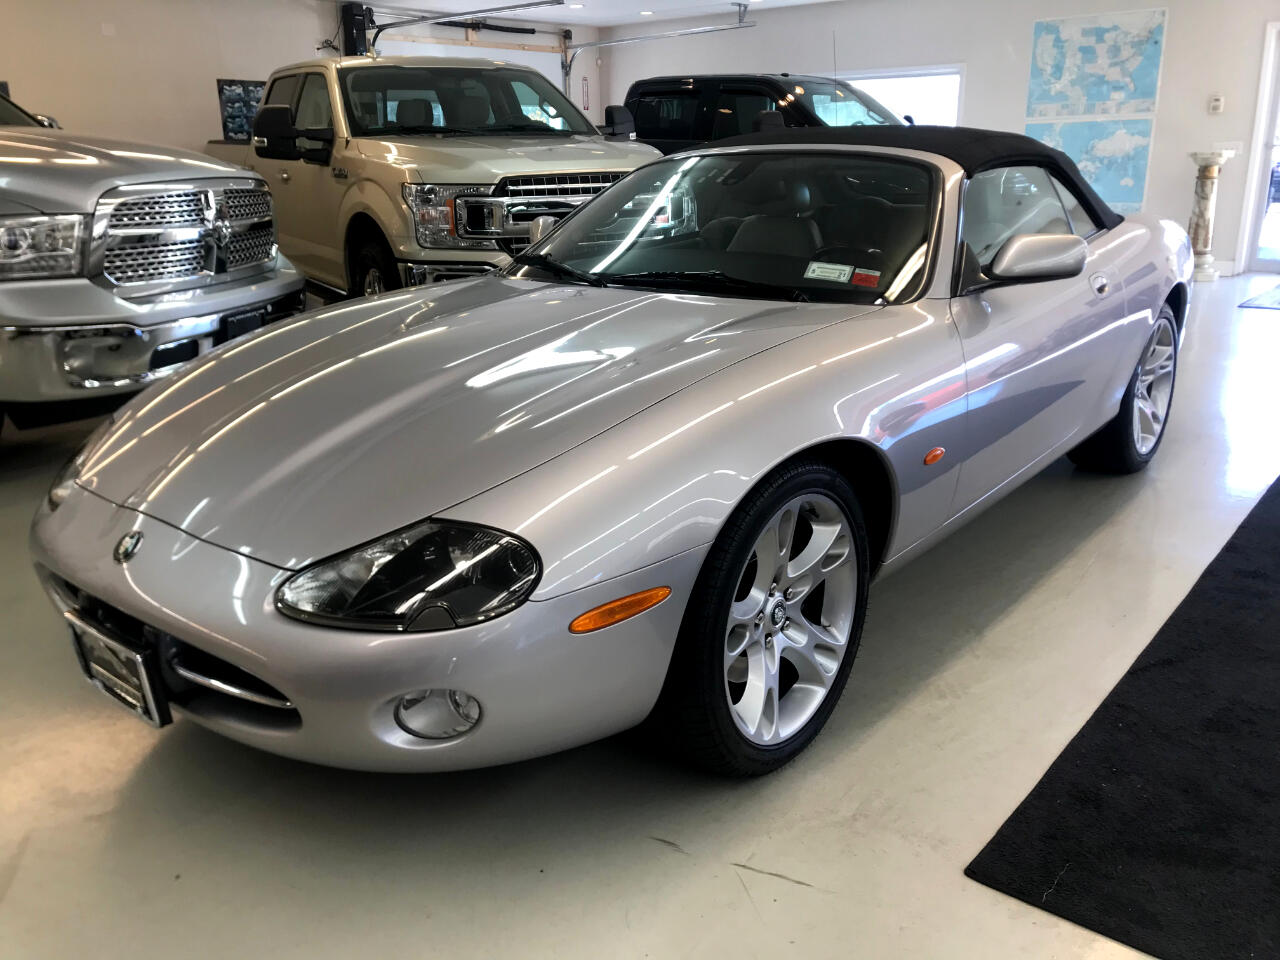 Jaguar XK-Series XK8 Convertible 2004